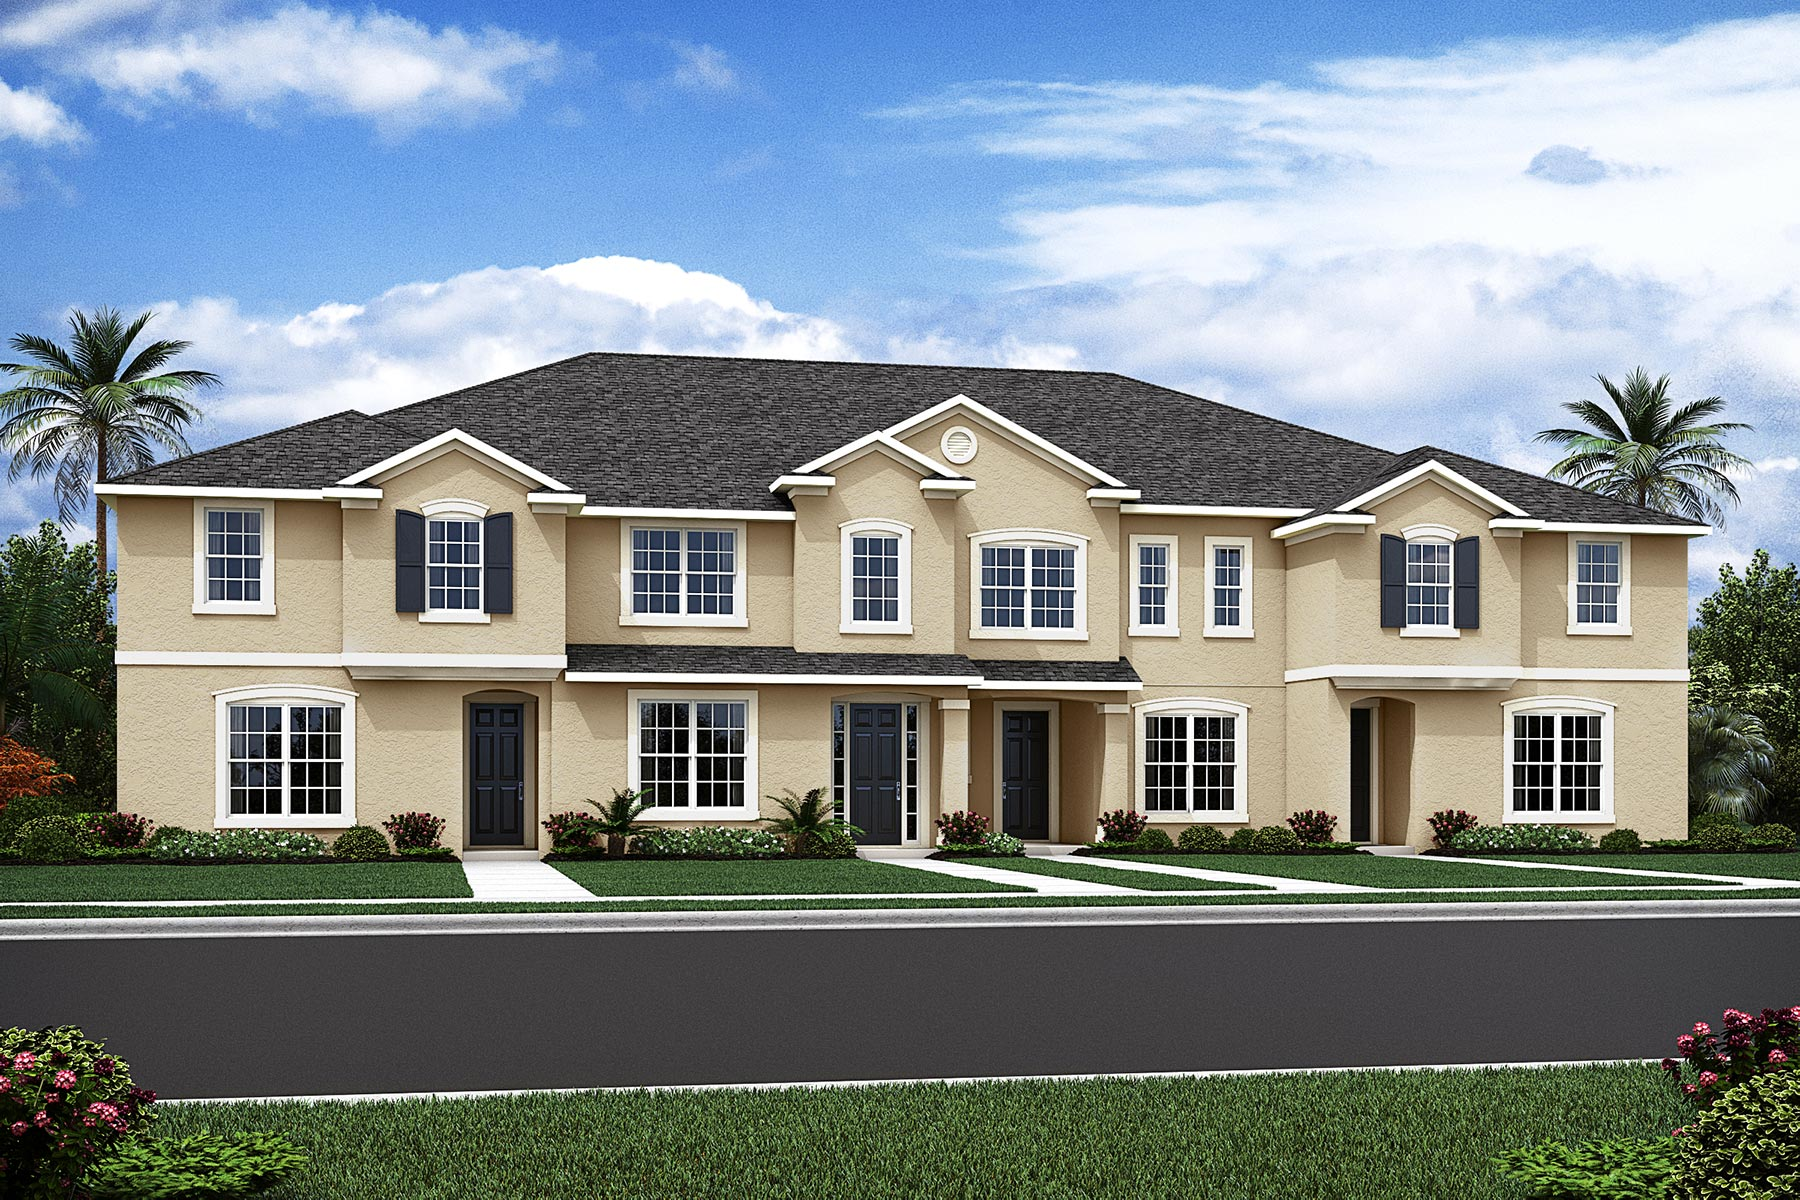 Clearwater Plan TownHomes at Solara Resort in Kissimmee Florida by Mattamy Homes